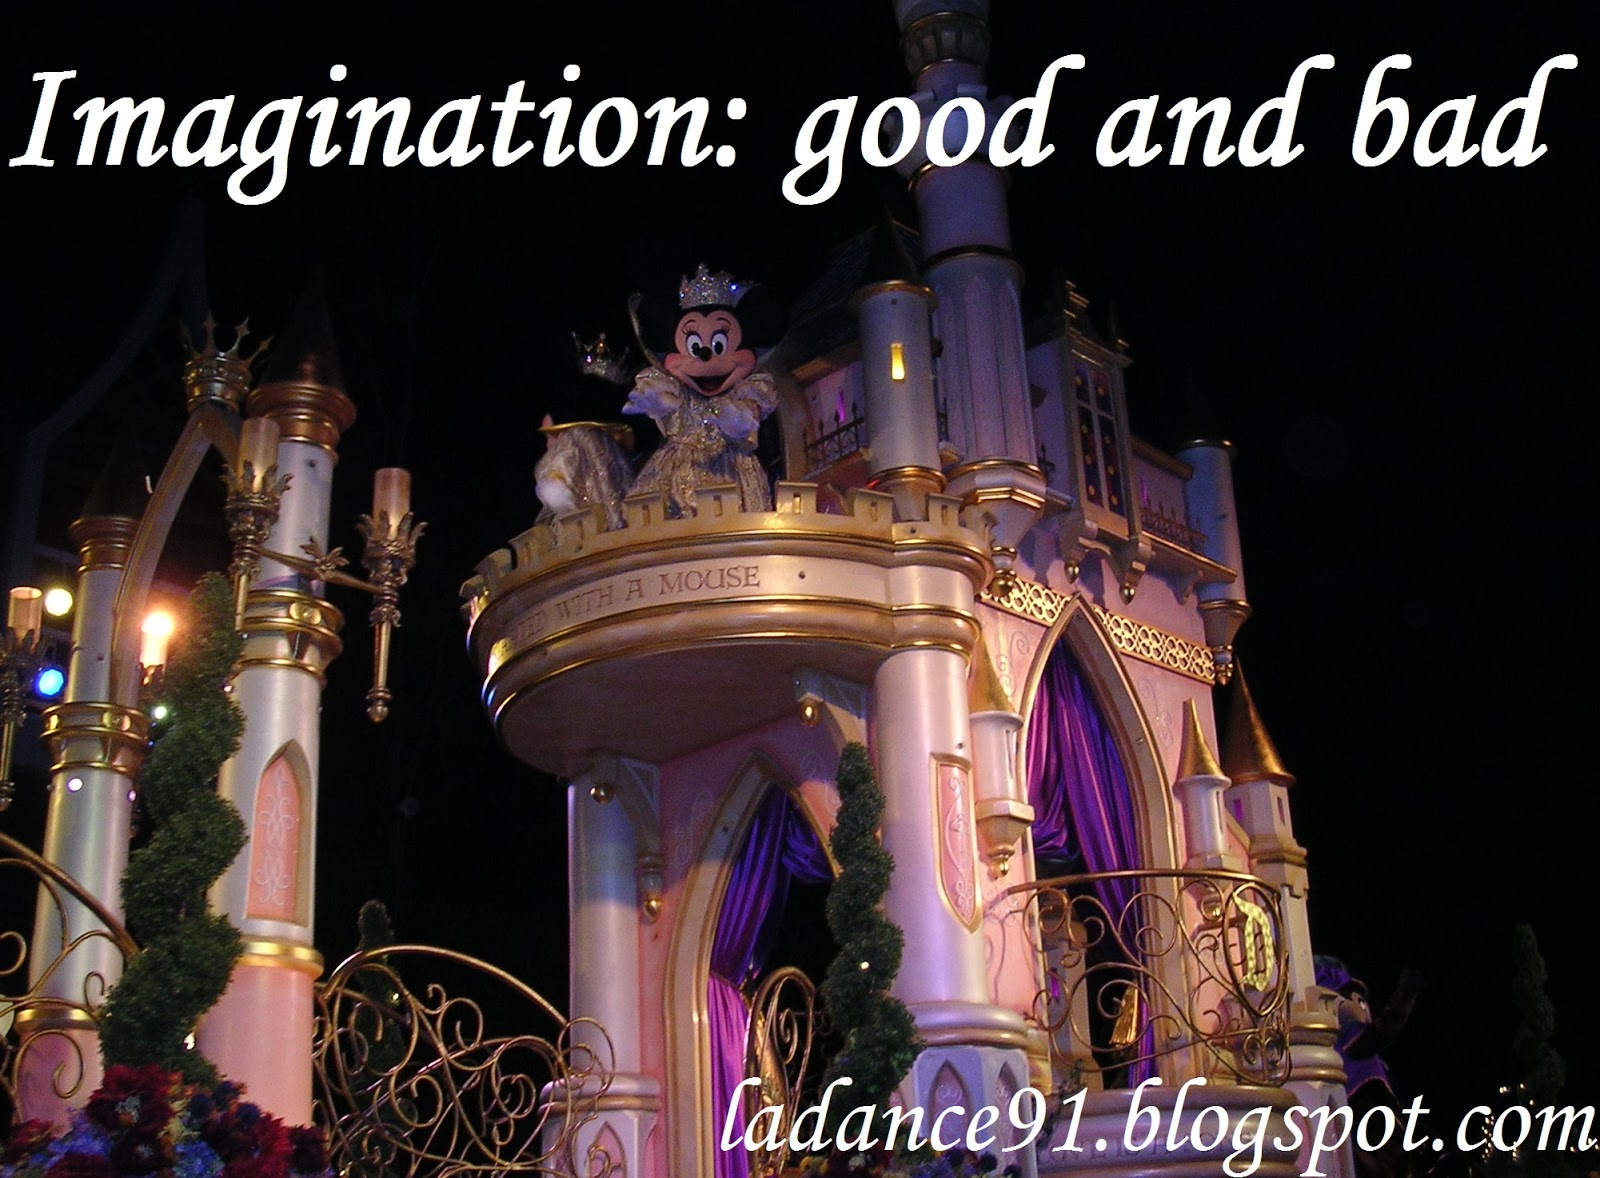 imagination can be good or bad